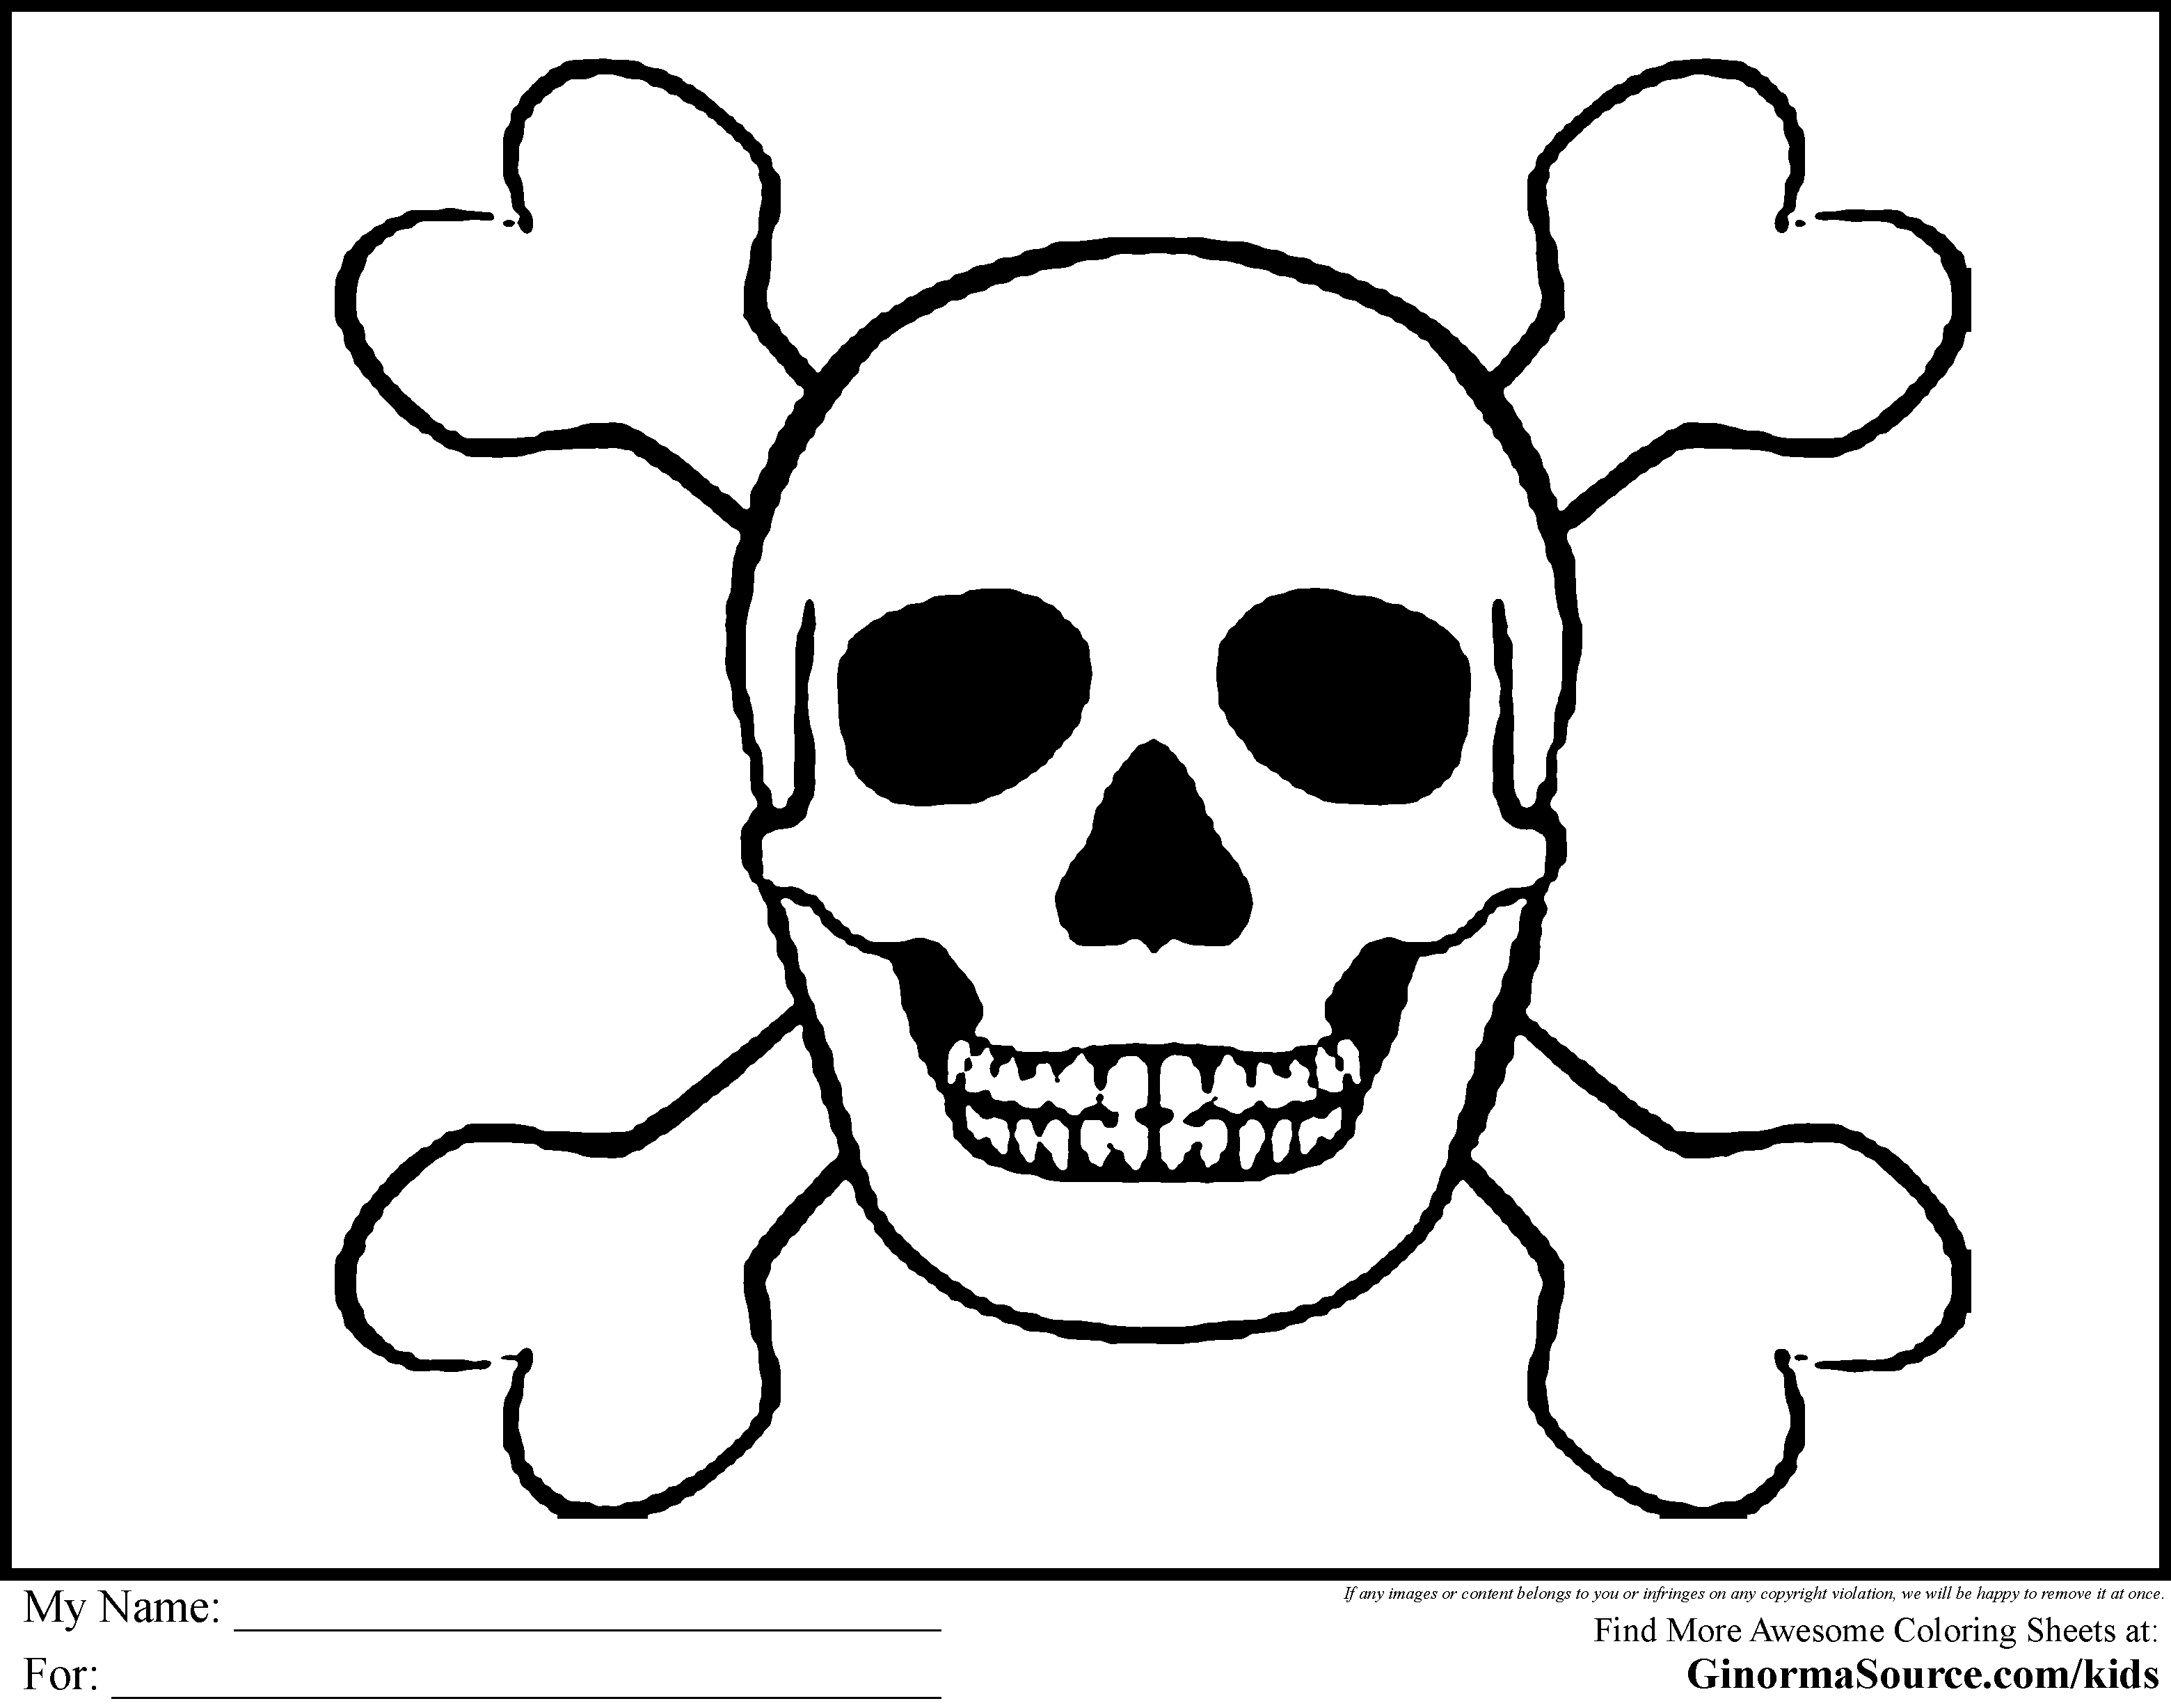 Pirate coloring pages to download and print for free